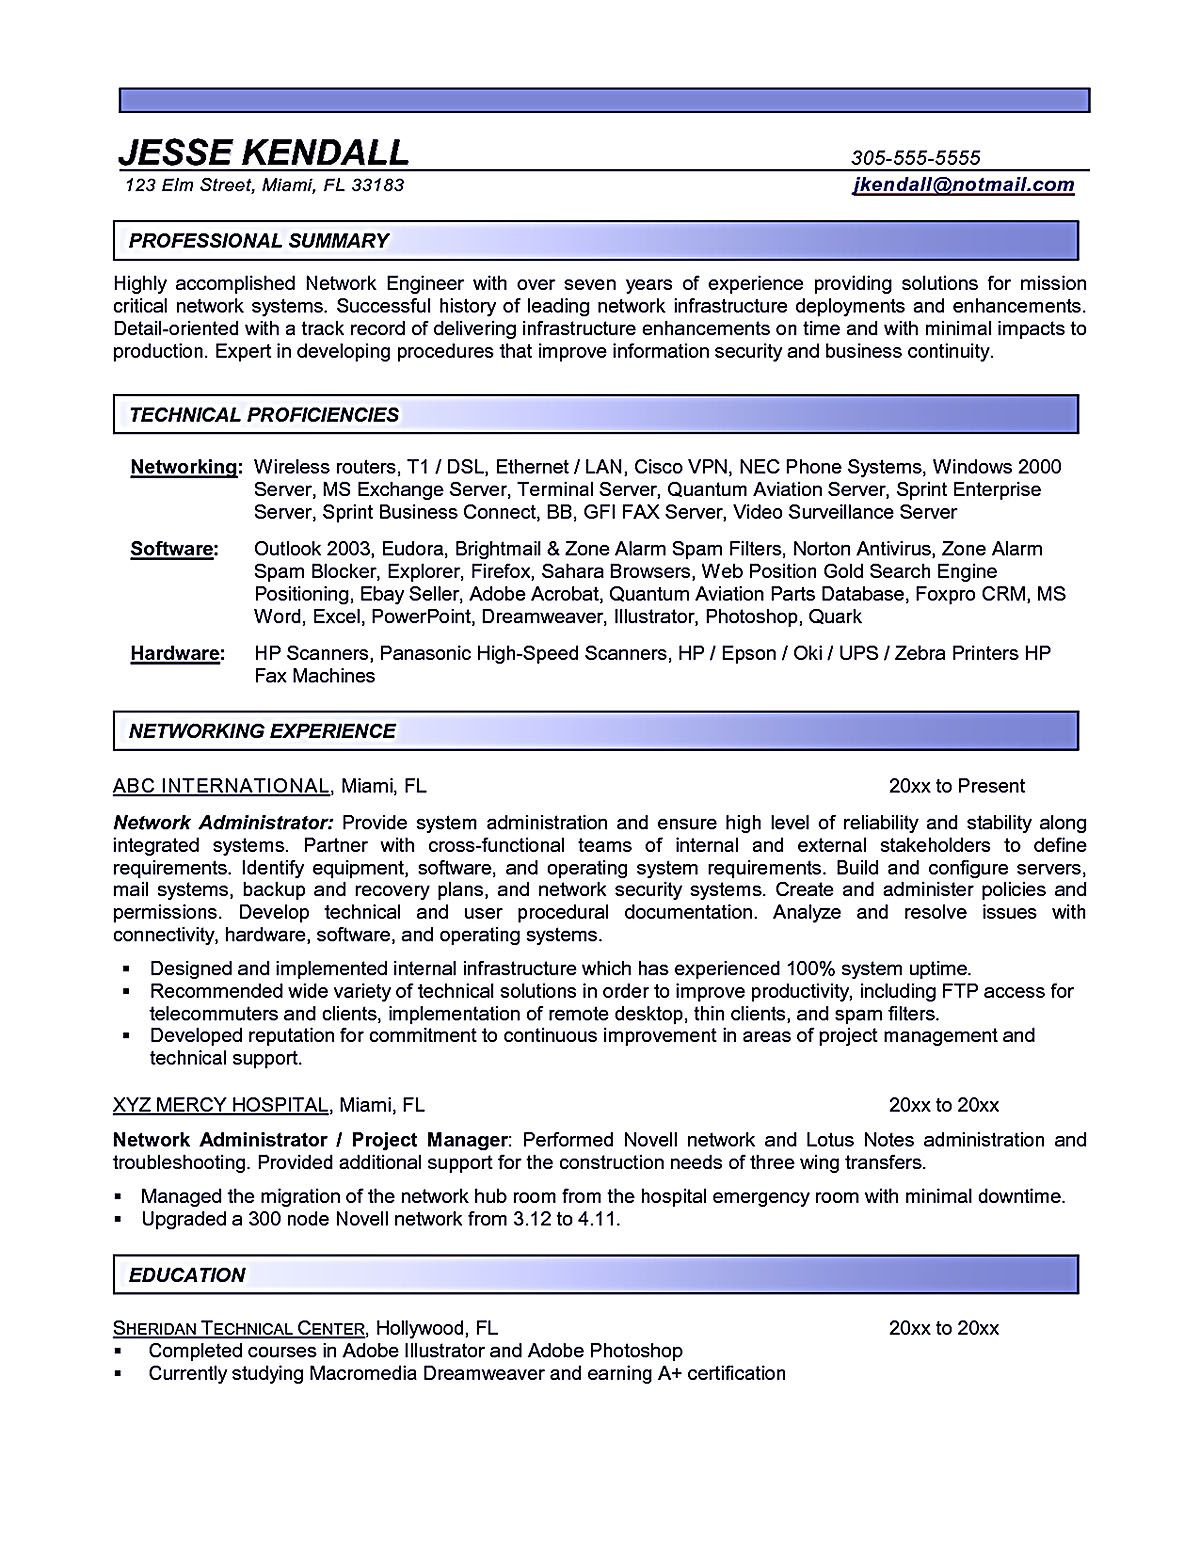 Account Receivable Resume Beauteous Account Receivable Resume Shows Both Technical And Interpersonal .